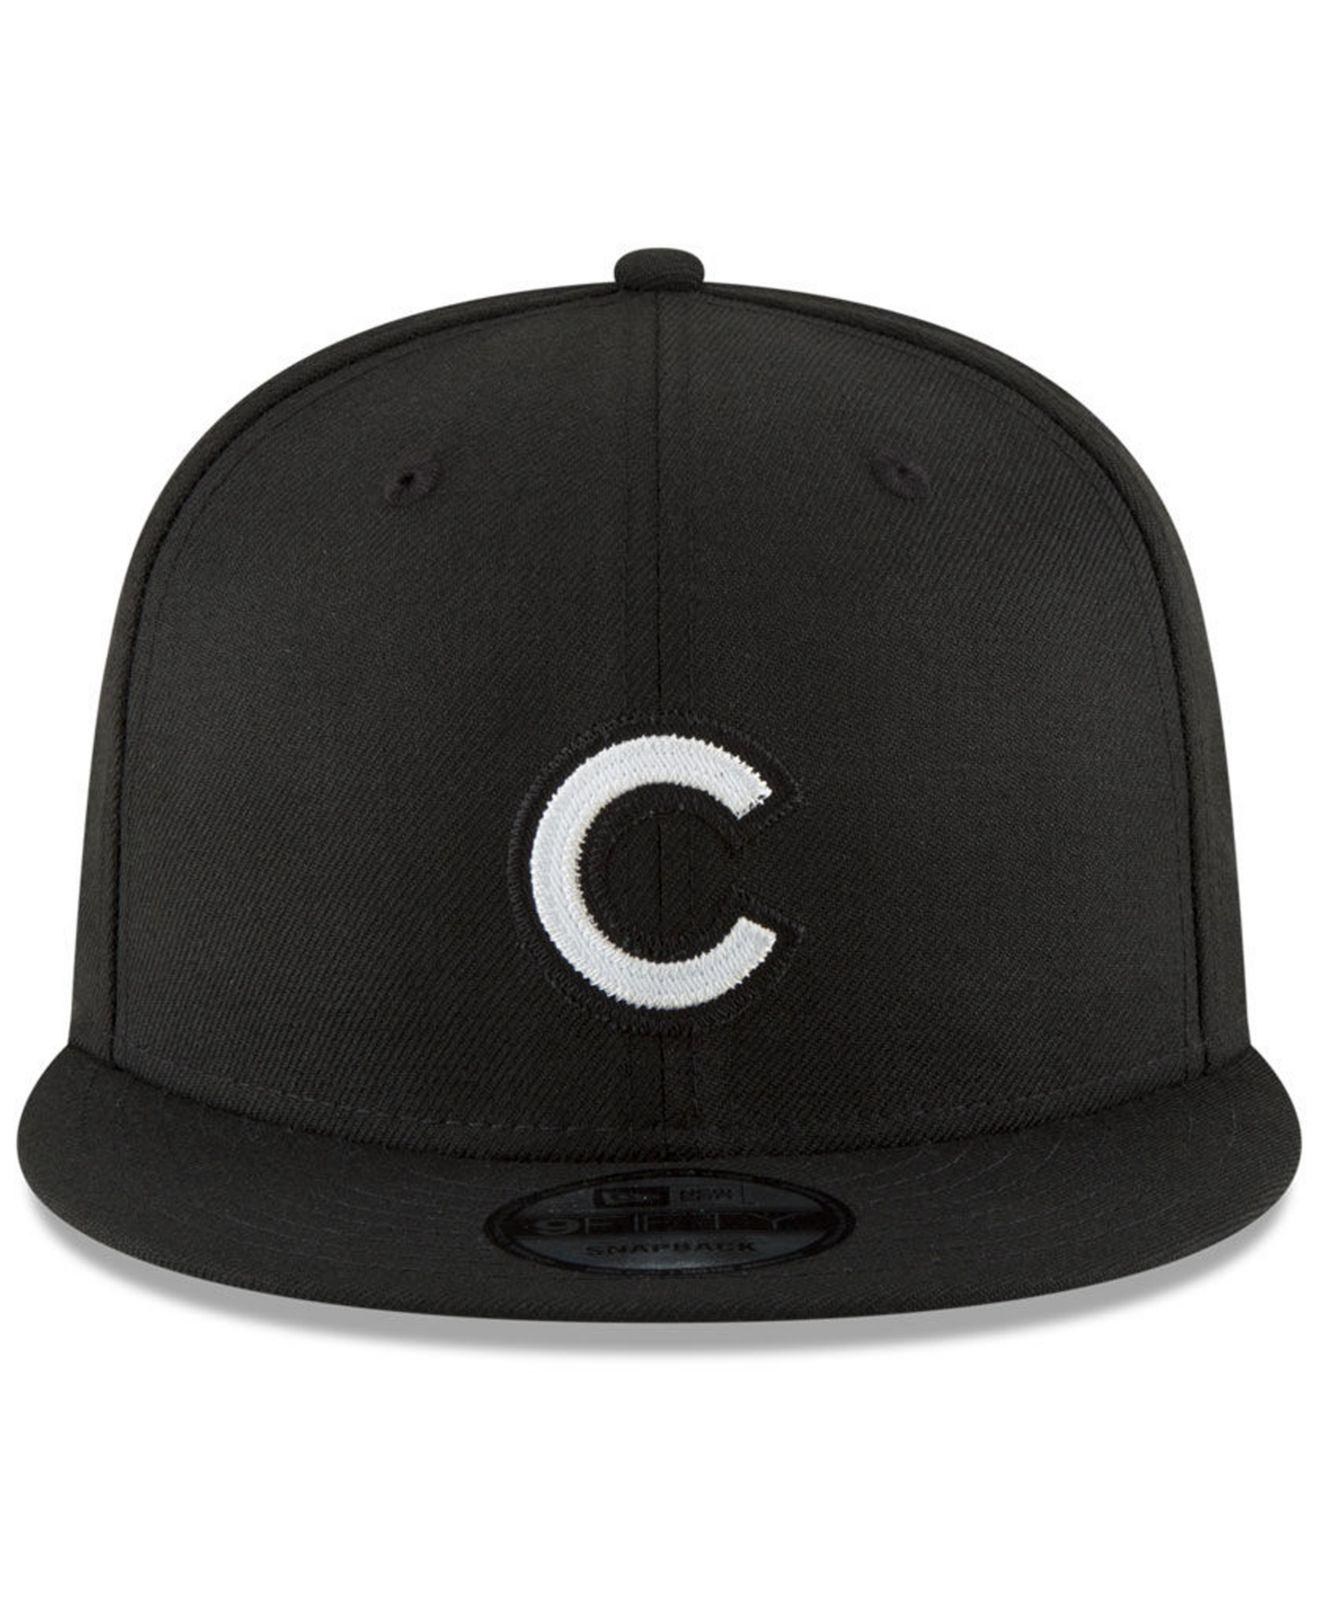 Lyst - KTZ Chicago Cubs Jersey Hook 9fifty Snapback Cap in Black for Men ceb282e69c3